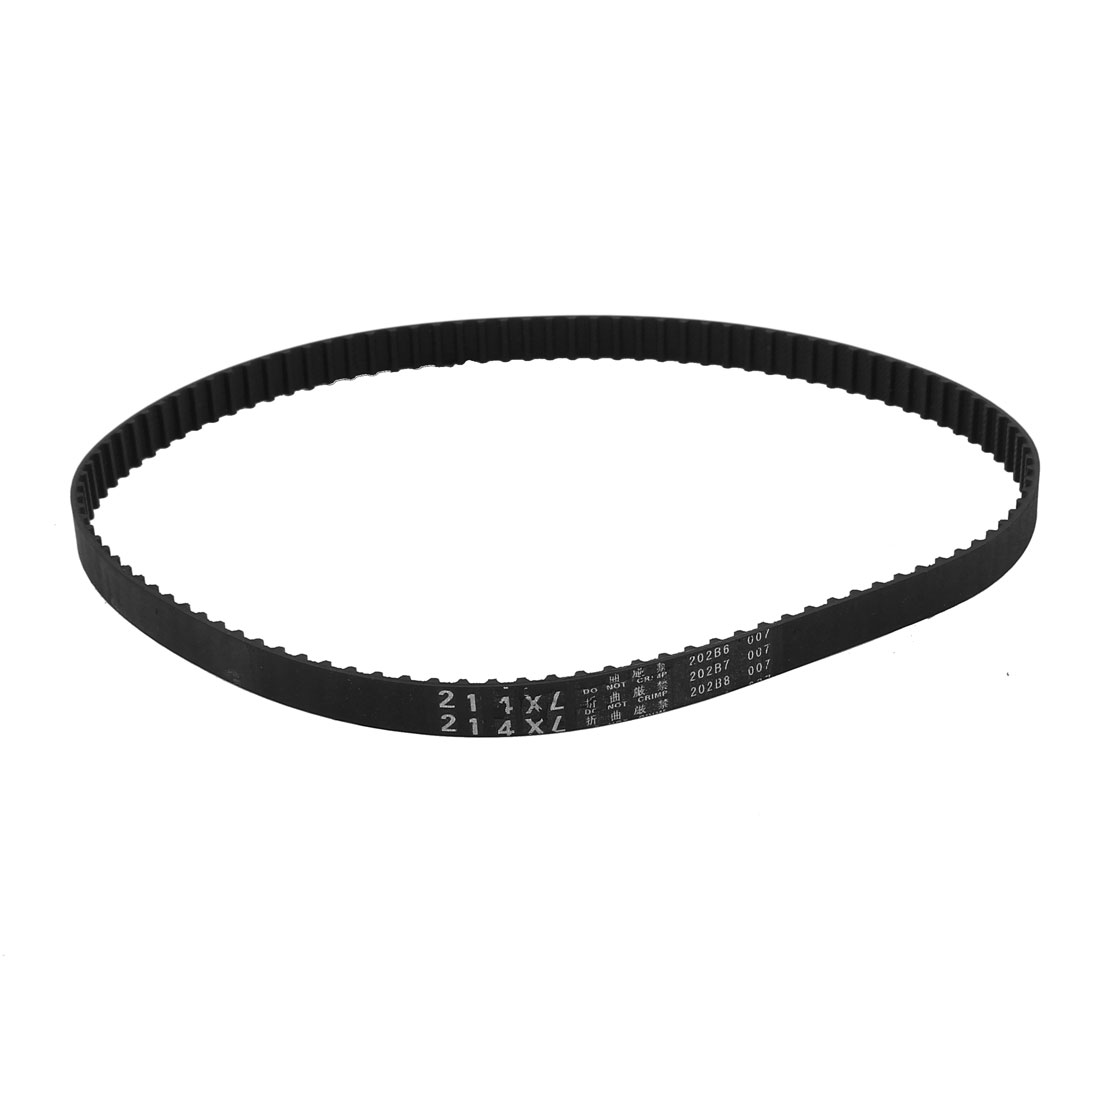 "214XL 21.4"" Girth 5.08mm Pitch 107-Teeth Black Rubber Industrial Synchro Machine Synchronous Timing Belt"